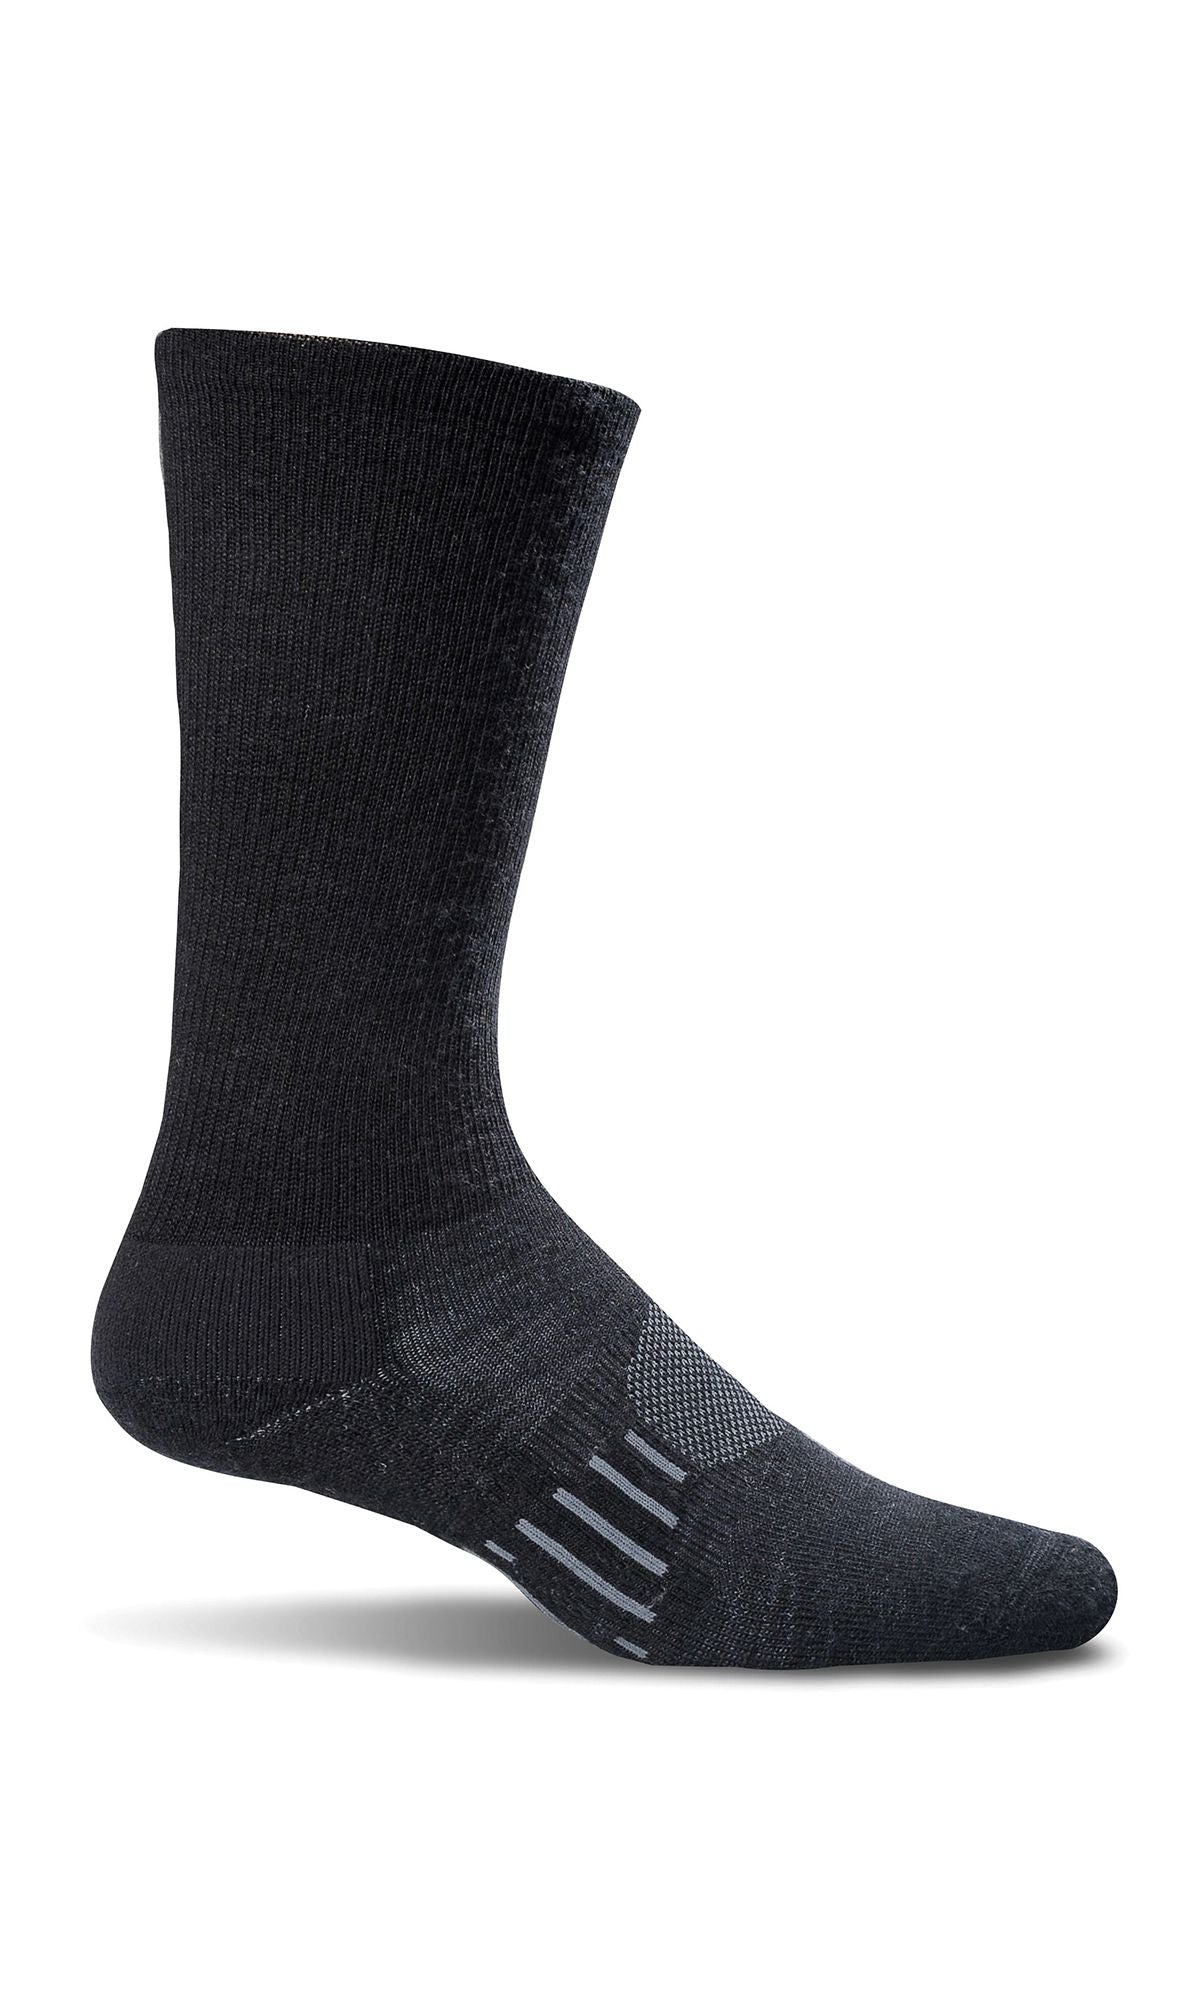 Sockwell - Men's Essential Comfort - Montrose CT2M